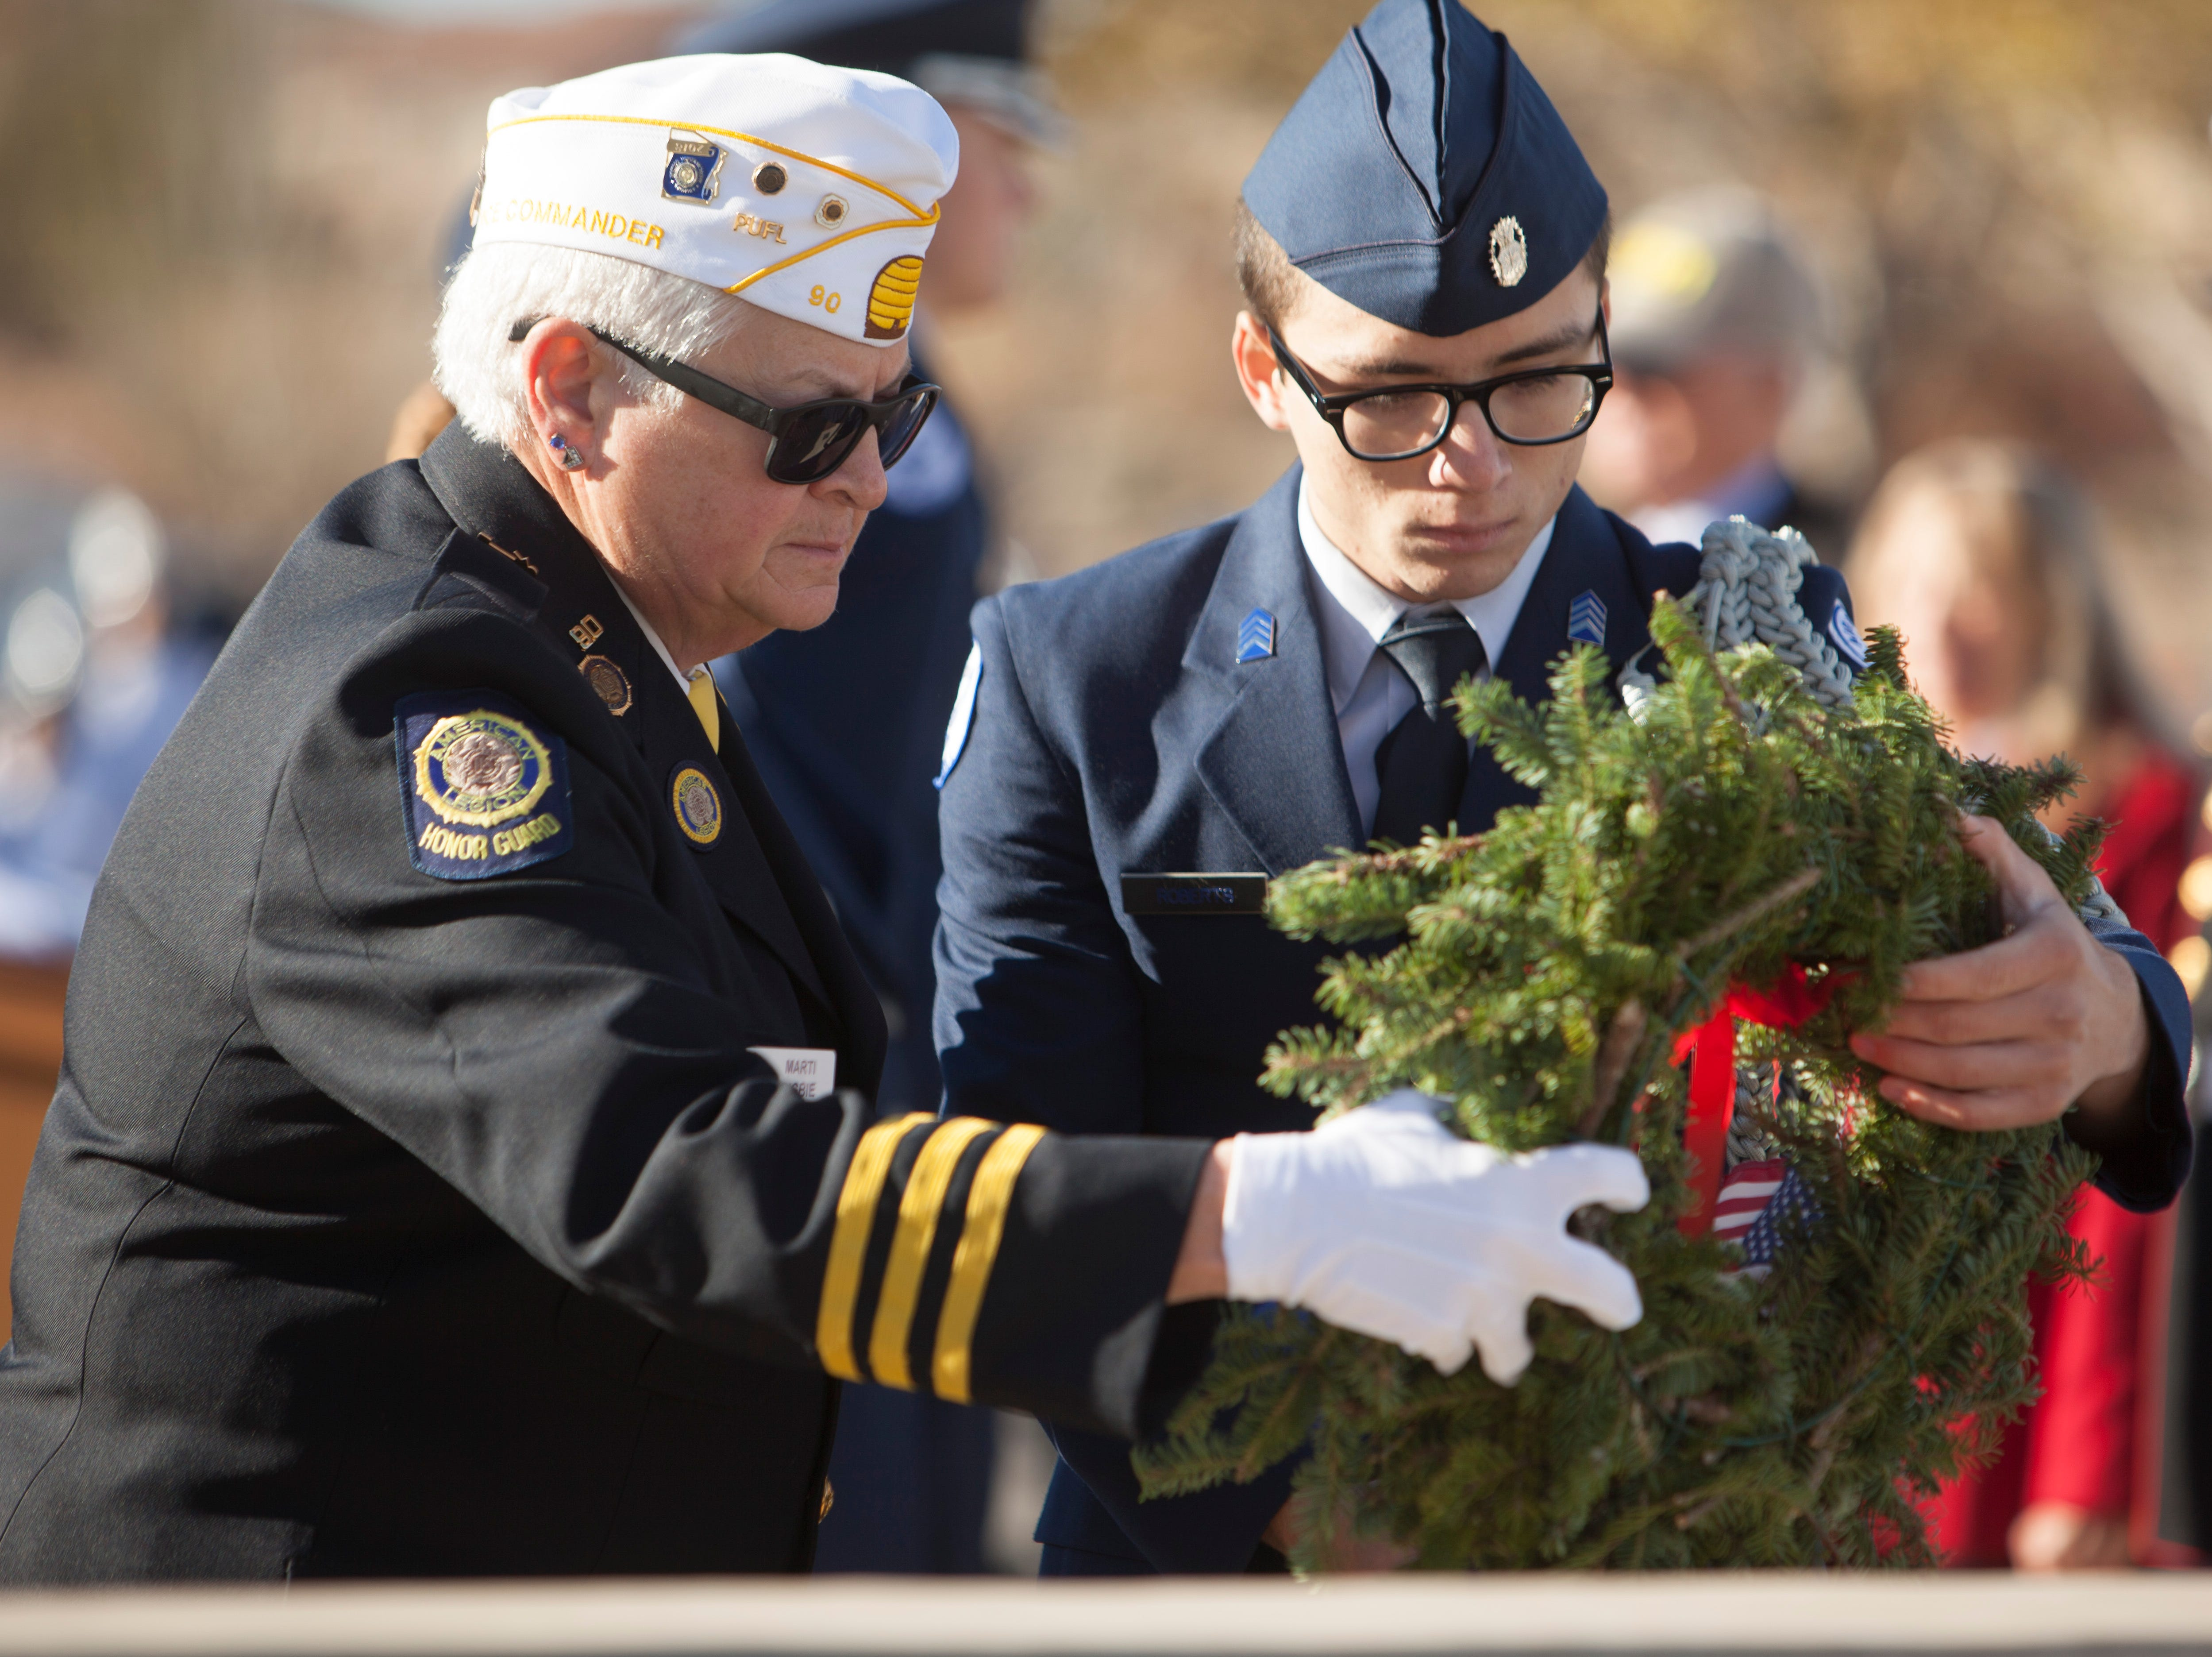 Marti Bigbie, commander of American Legion Post 90, and a member of the Dixie High Air Force JROTC place a wreath at Tonaquint Cemetery in St. George as part of the Wreaths Across America event Saturday, Dec. 15, 2018.